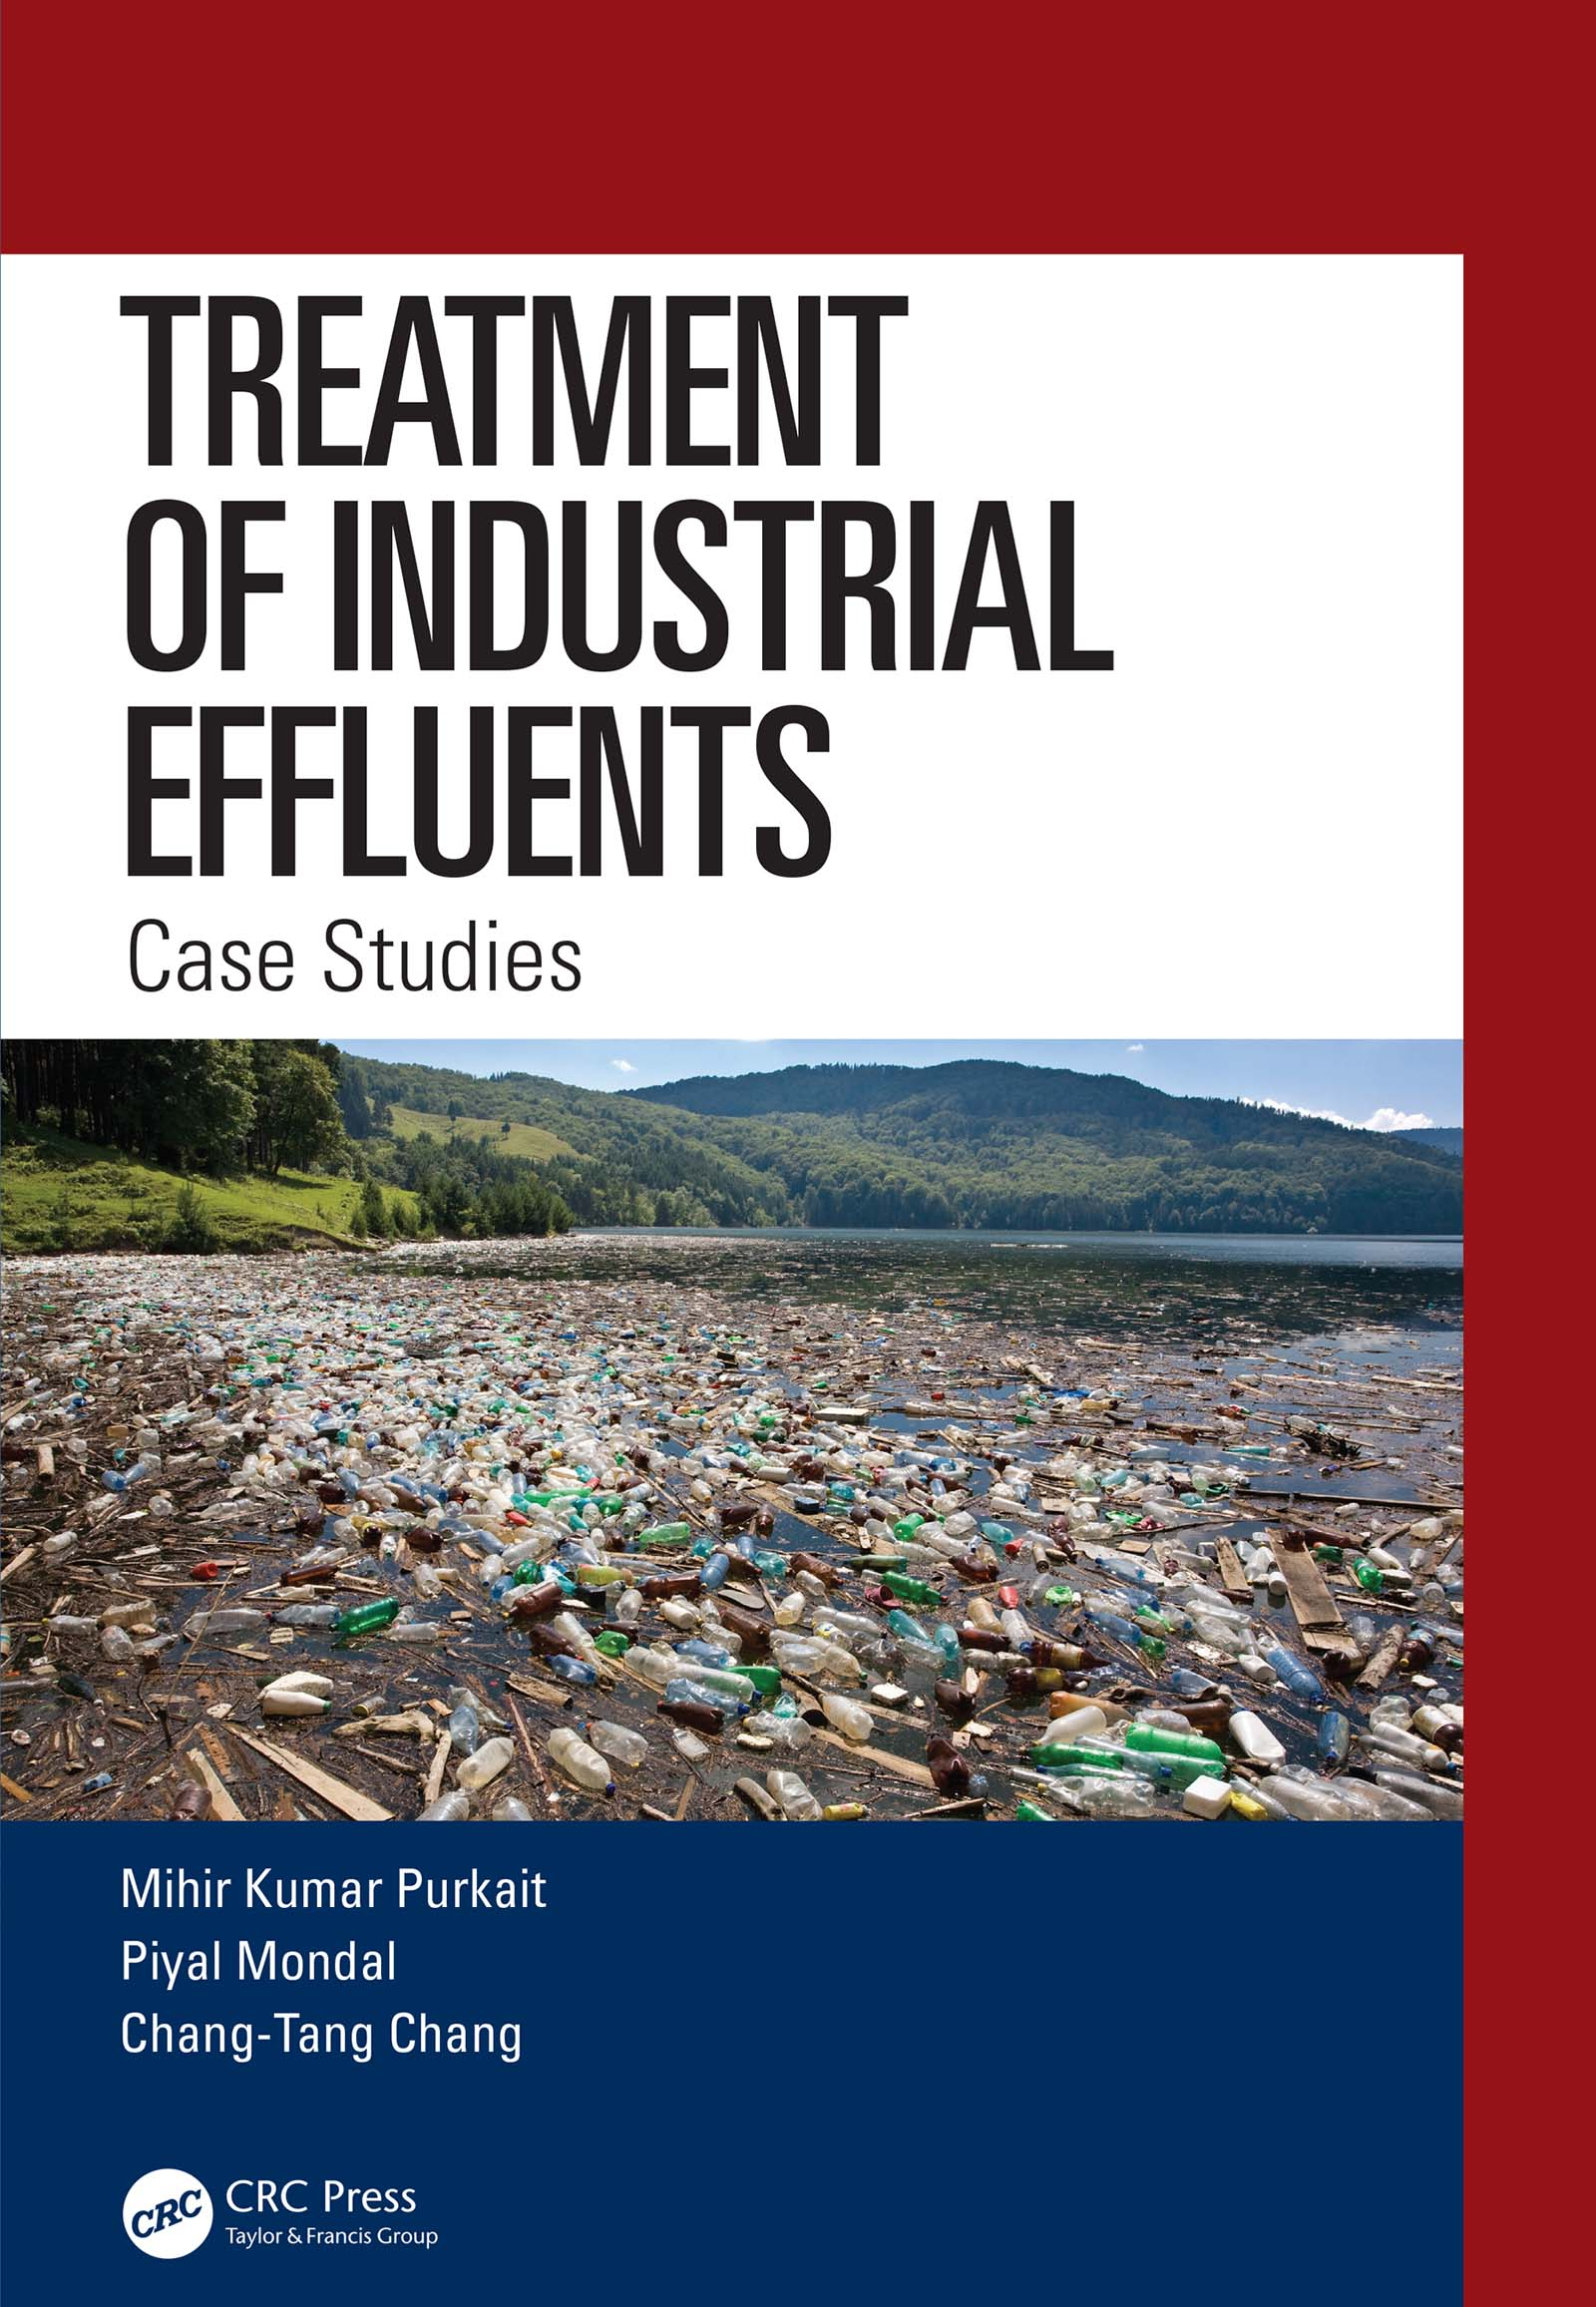 Treatment of Industrial Effluents: Case Studies book cover